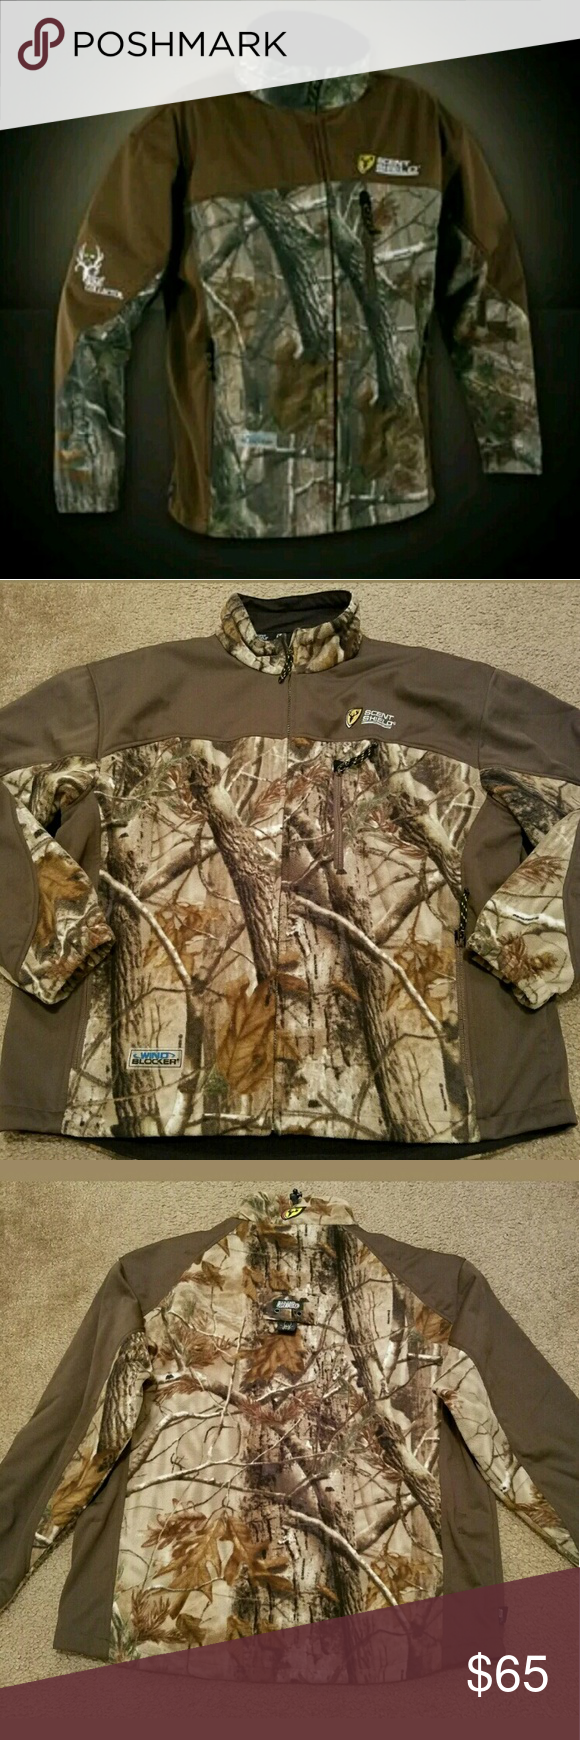 Realtree AP Bone Collector Scent Shield S3 Sz XL This Realtree AP Bone Collector Scent Shield S3 Wind Blocker Fleece Hunting Jacket Size XL is a great item for your hunting husband. It is in excellent pre-owned condition. It has no stains, rips or tears anywhere in the fabric. All zippers slide smoothly and easily. This jacket features a  tree spider for easy hook up and safety. These jackets retail for up to $300+. Great for the hunter. Measurements are: Armpit to Armpit: 28 inches  Length…